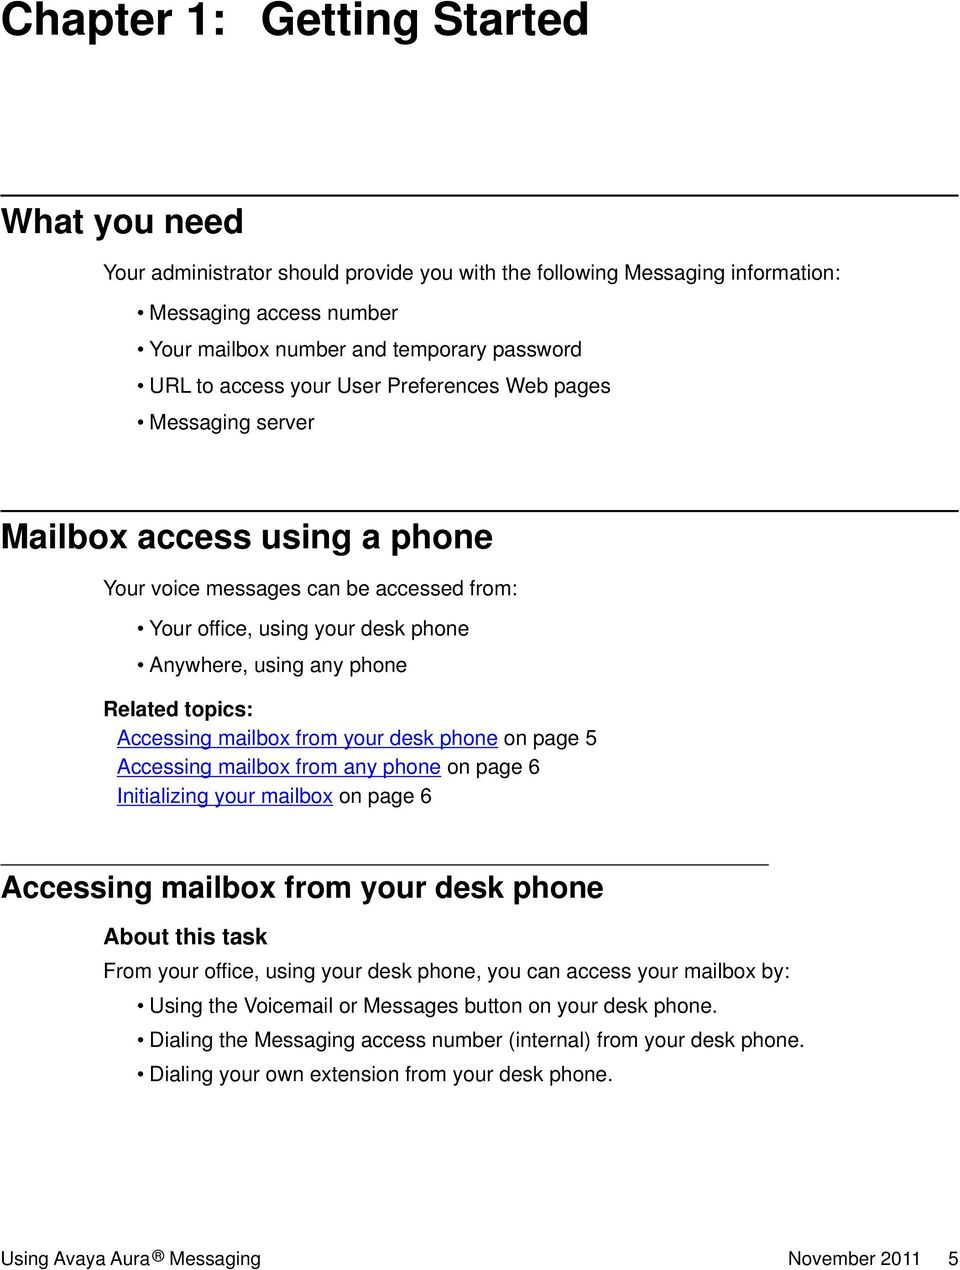 topics: Accessing mailbox from your desk phone on page 5 Accessing mailbox from any phone on page 6 Initializing your mailbox on page 6 Accessing mailbox from your desk phone From your office, using